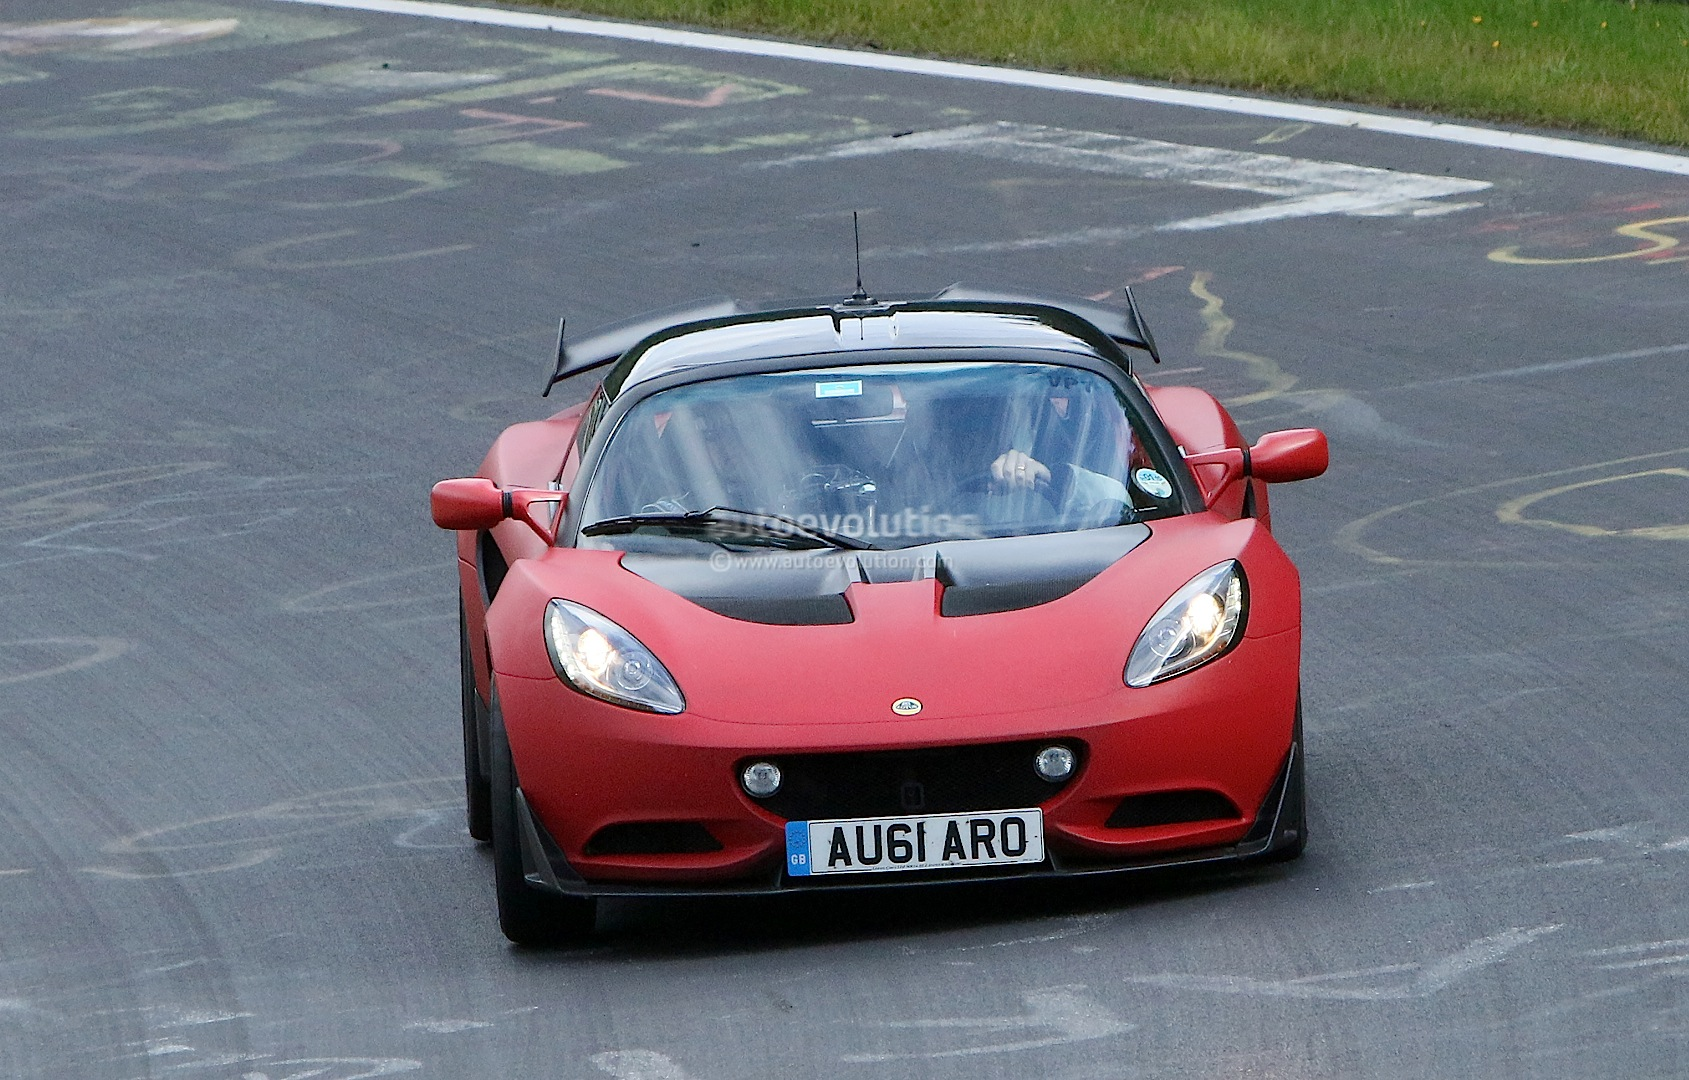 Lotus Elise R Puts the Hammer Down On the Nurburgring Nordschleife ...